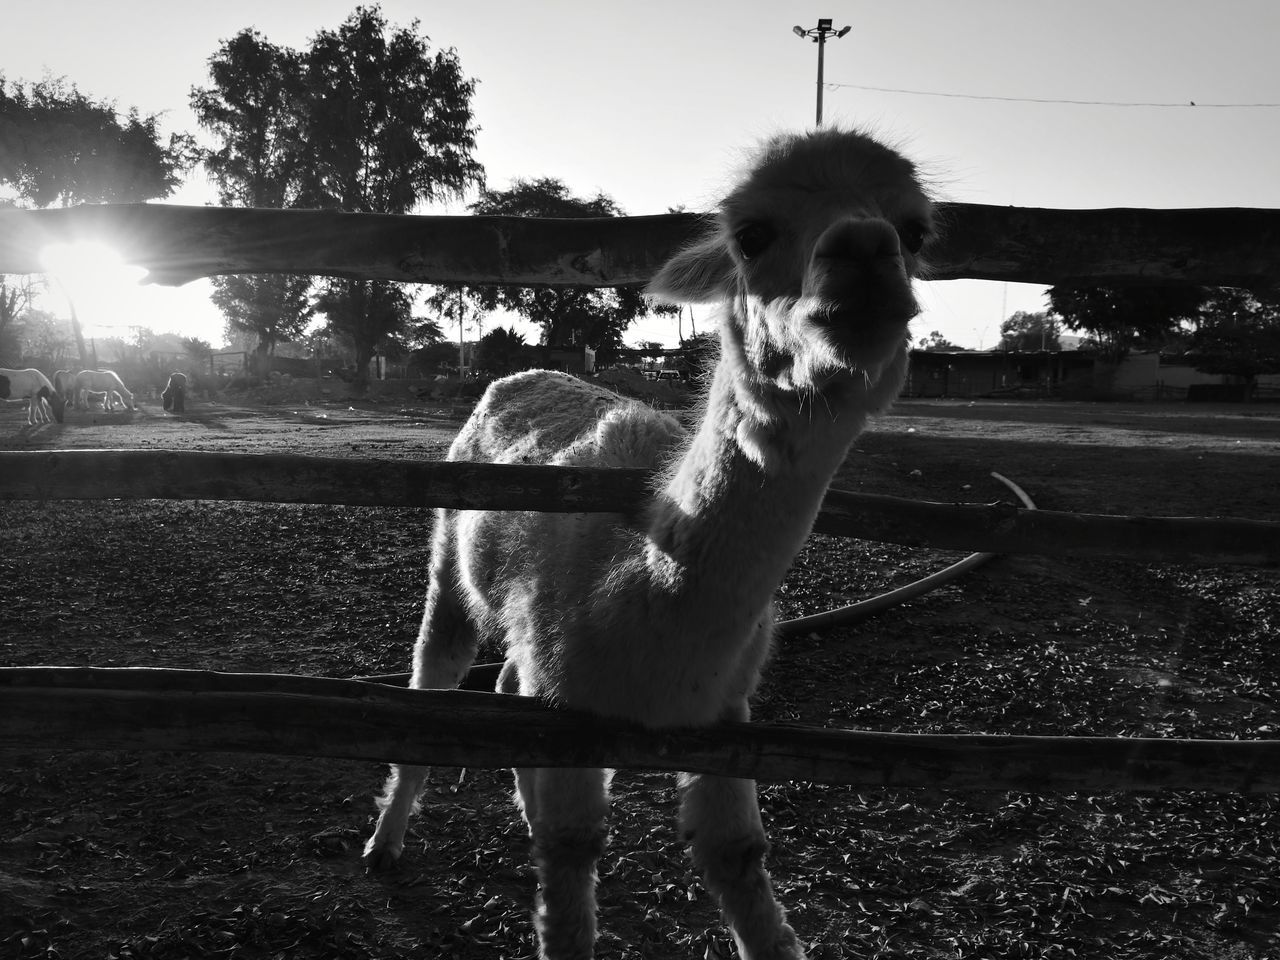 Curious lama Water One Person Leisure Activity Outdoors Sky Day Real People Lifestyles Adults Only Adult Spraying People Only Men Nature One Man Only Young Adult One Animal Rural Scene Fresh 3 Leica Huawei P9 Eye4photography  EyeEm Best Shots Animal Llama❤ Lamaphotography